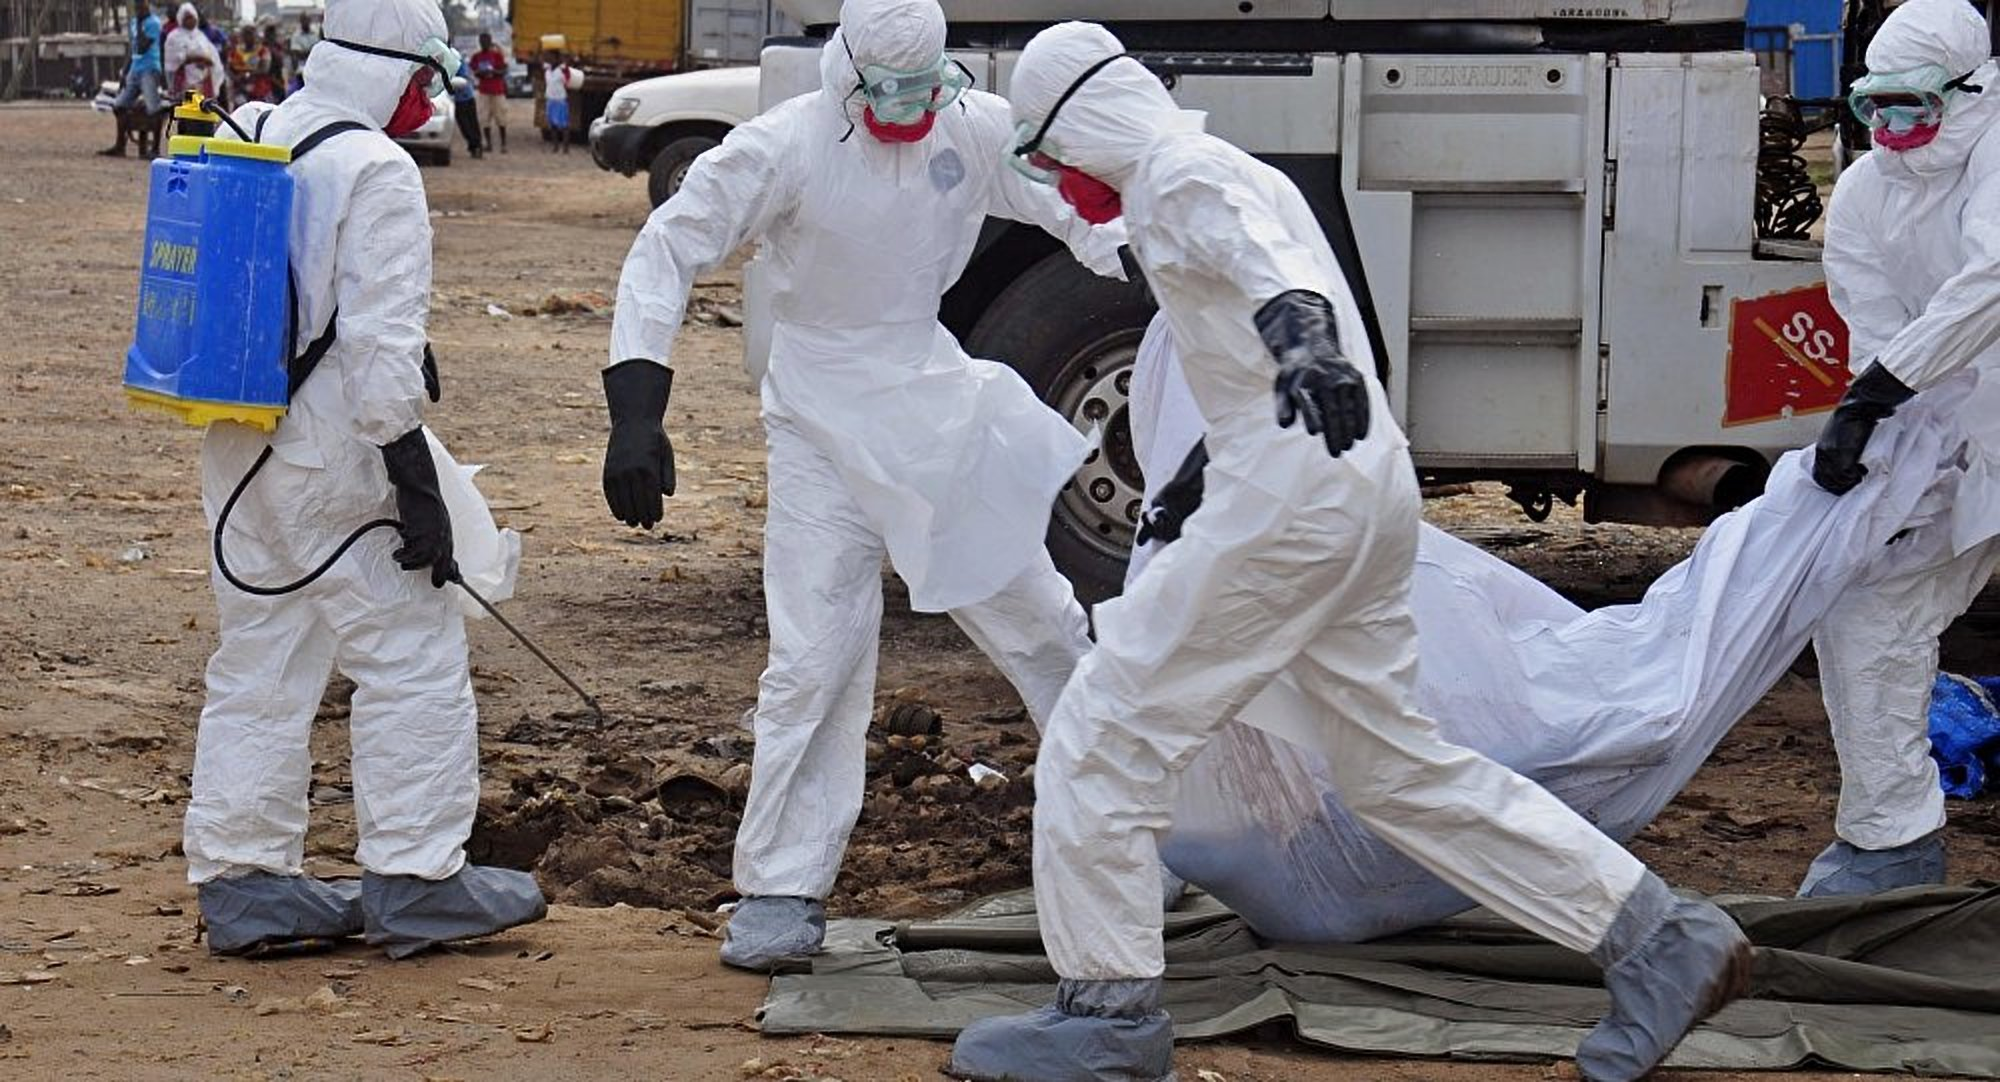 The worst Ebola epidemic ended in West Africa two years ago killing over 11,000 people (FILE PHOTO)